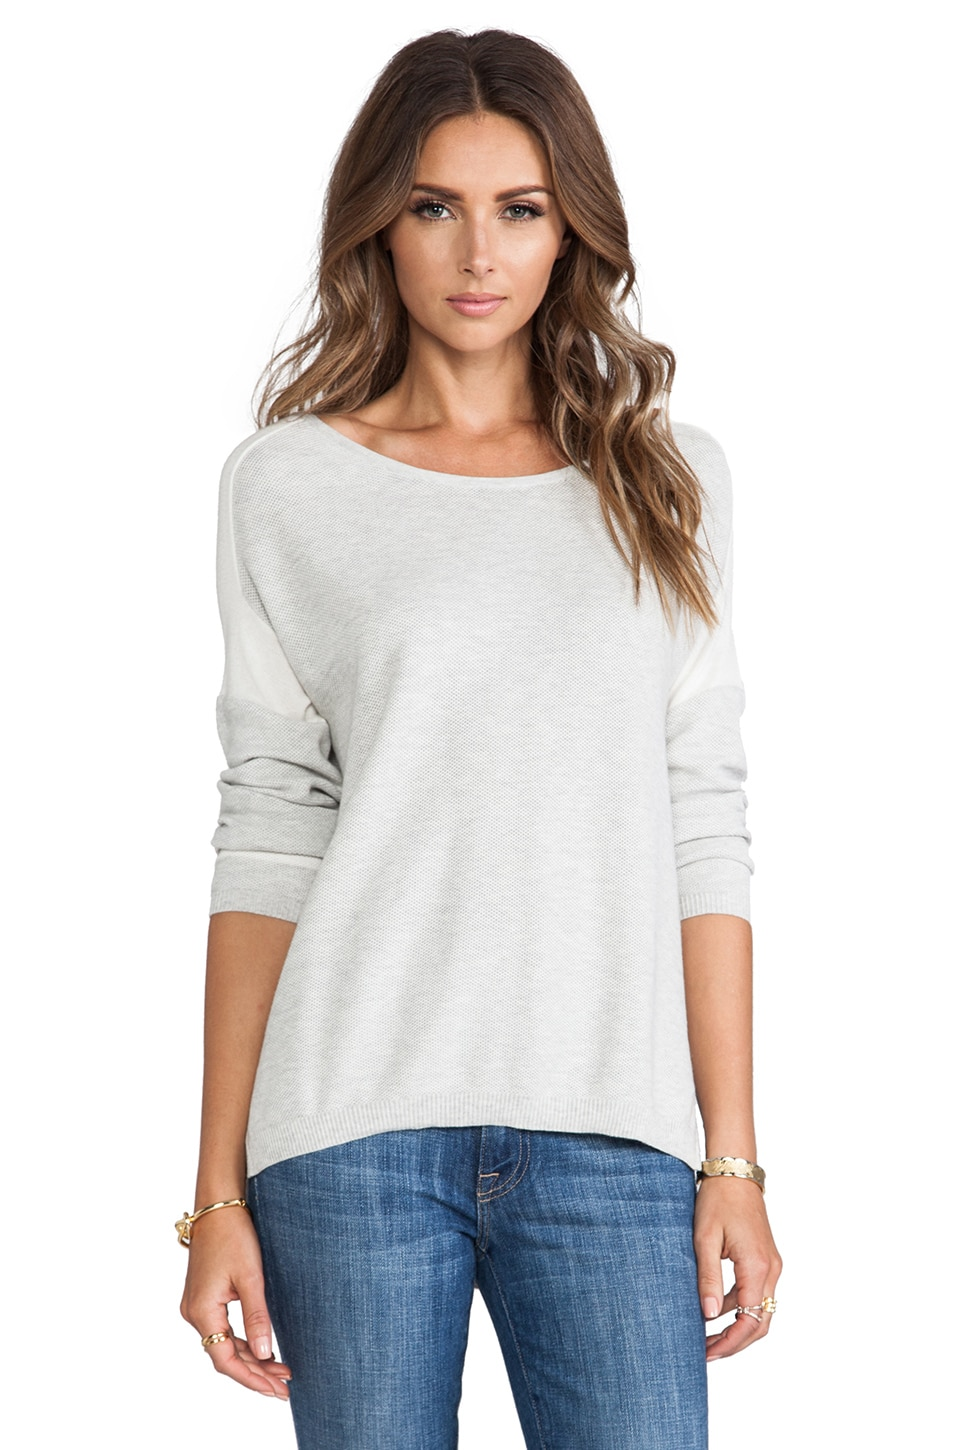 DUFFY Cashmere Blend Pullover in T.Niveous/Off White